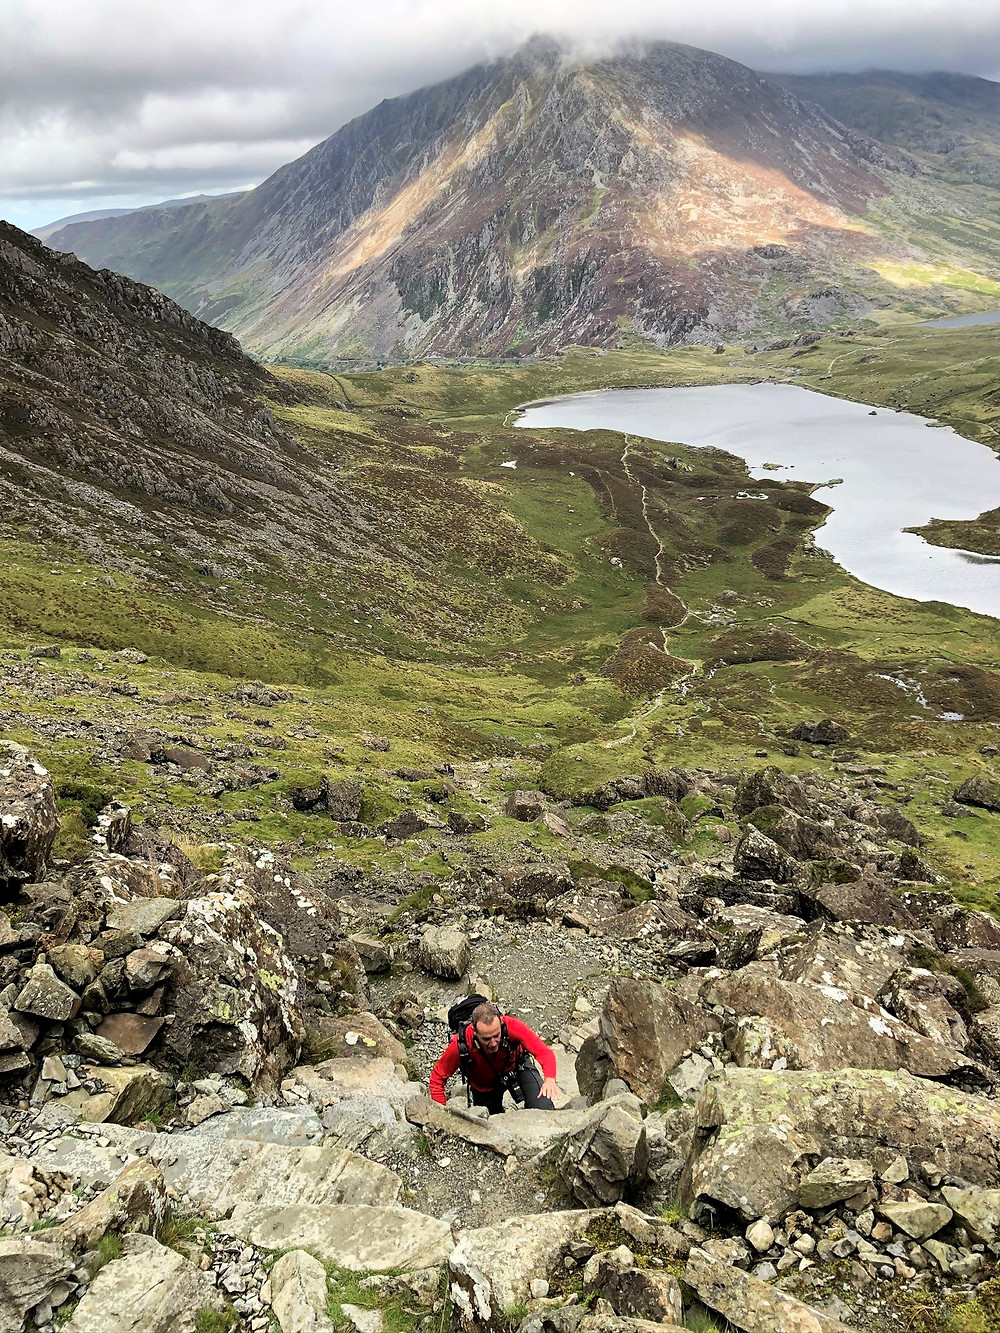 Scrambling on the path leading to Devil's Kitchen in Snowdonia